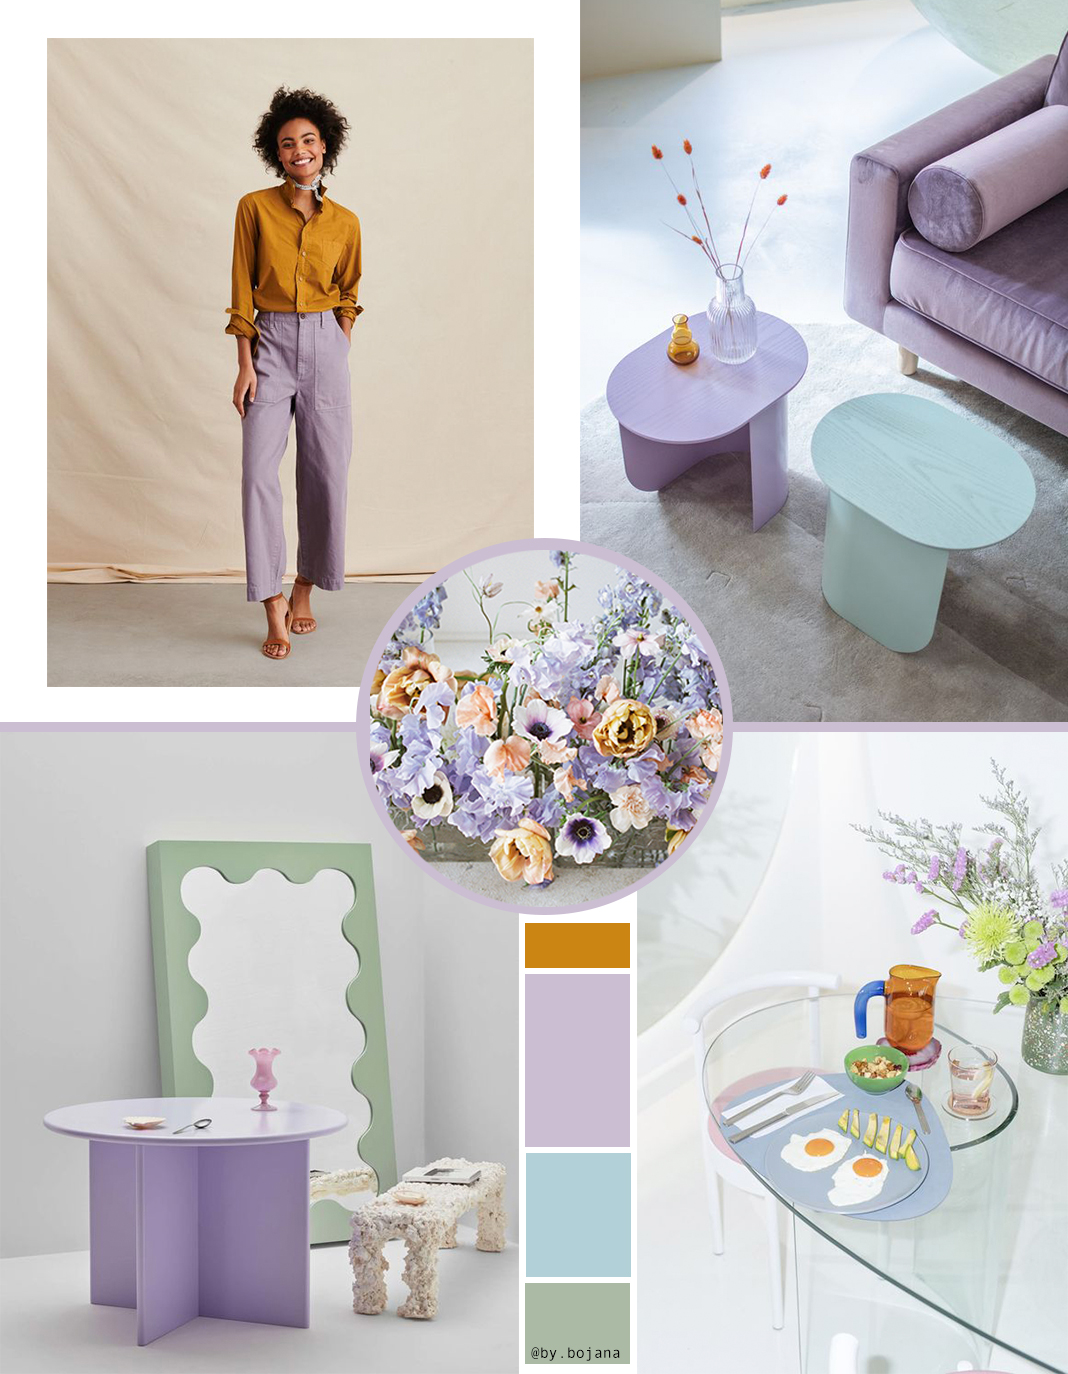 Millennial Purple interiors and decor